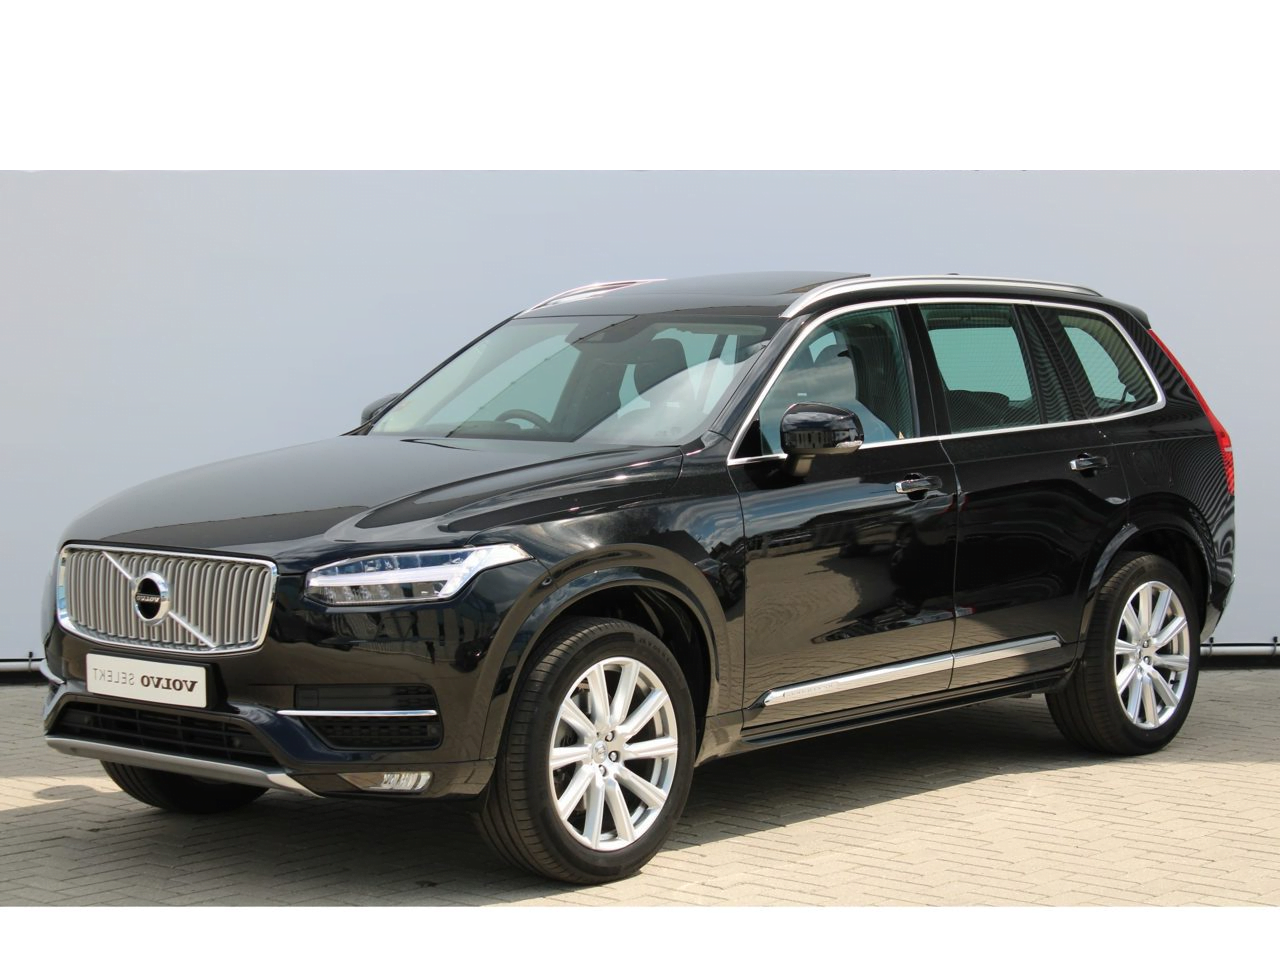 Volvo XC90 T5 185kW/252pk AWD Inscription Automaat 7-Persoons 5d.